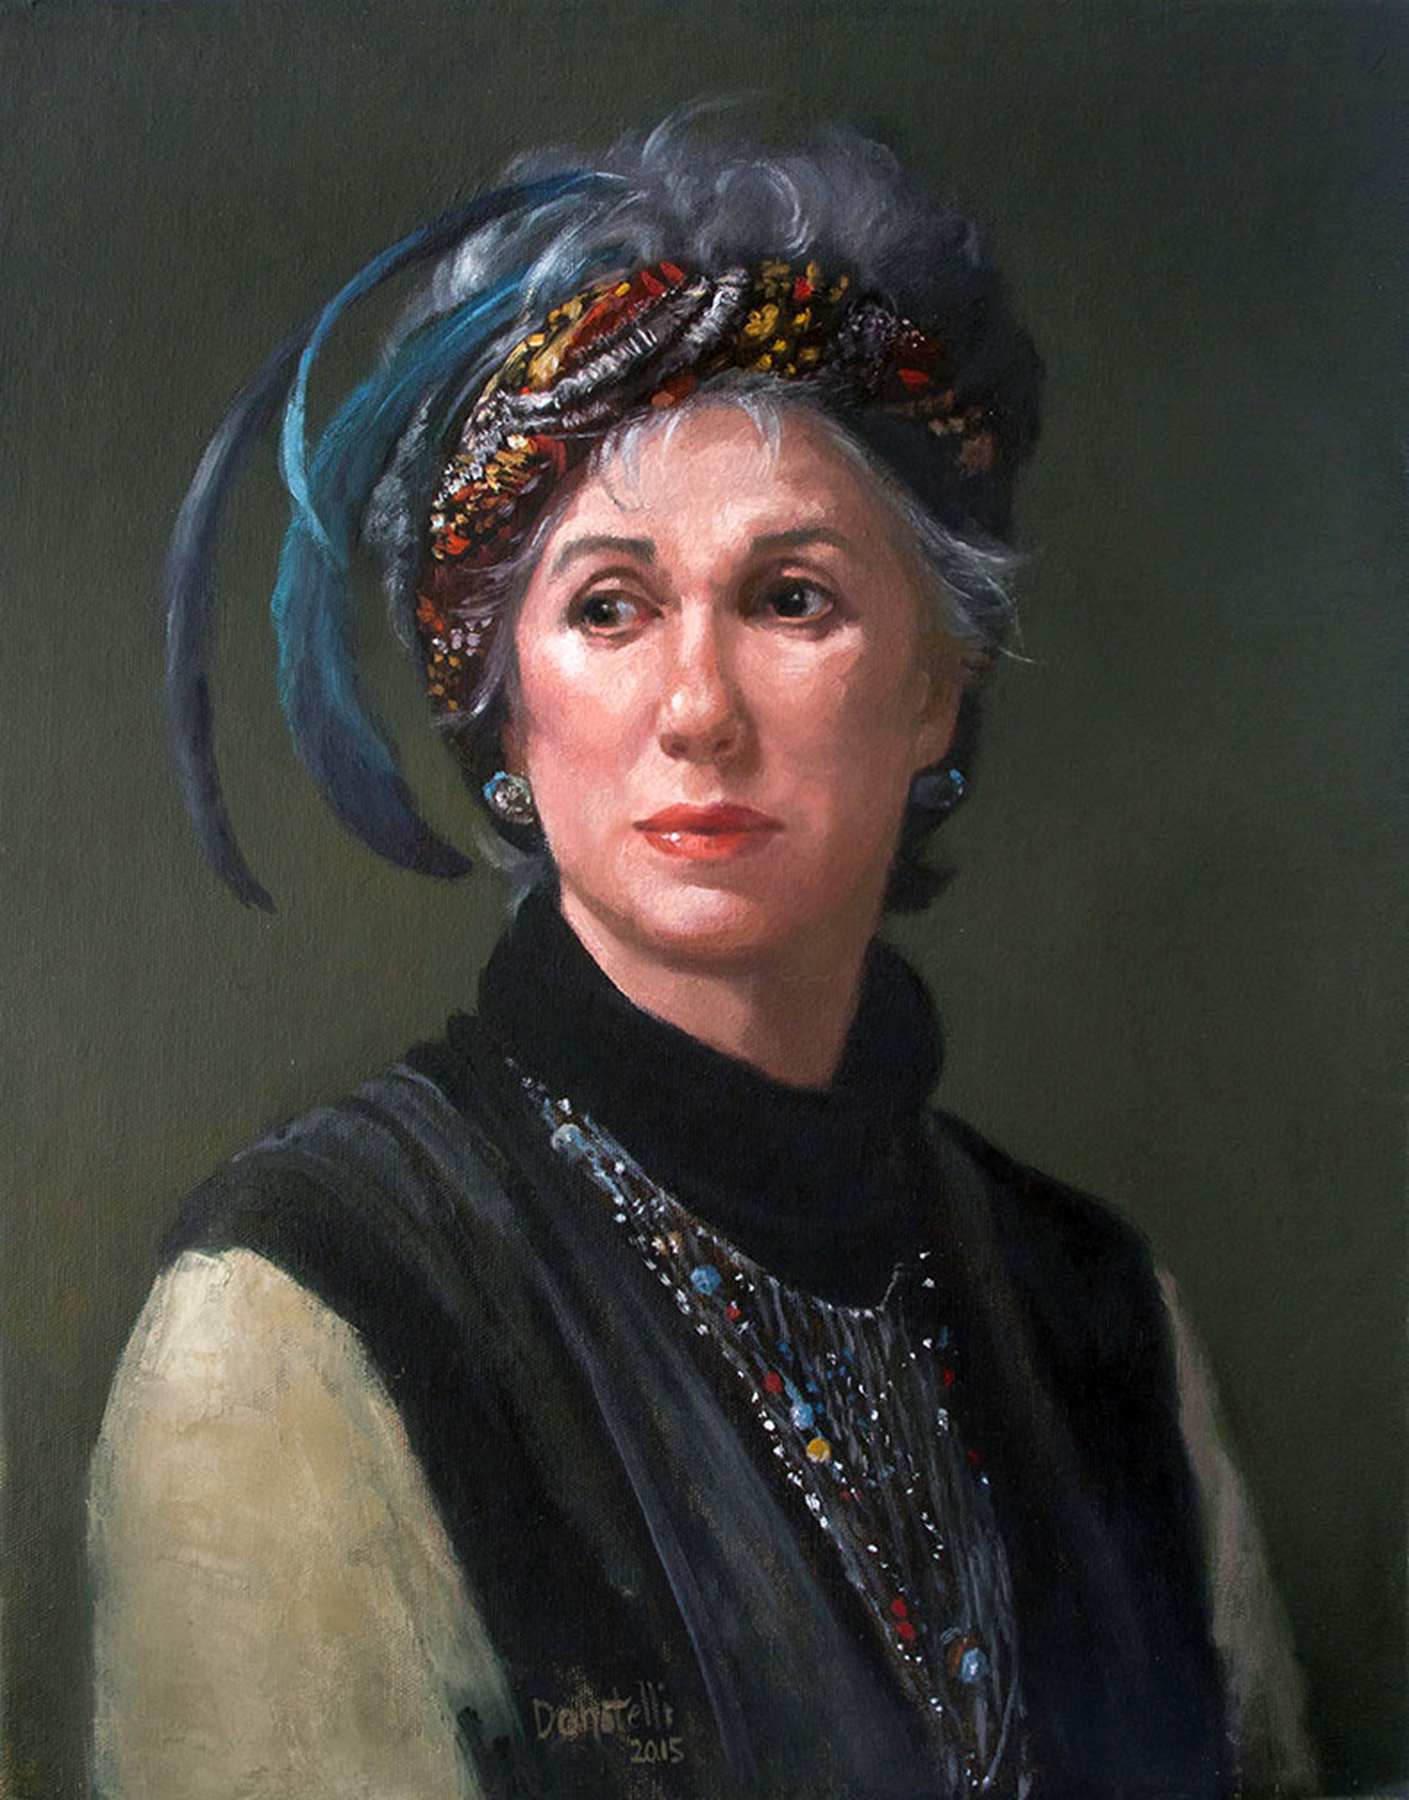 In Her Vintage Style, Oil on canvas, 18